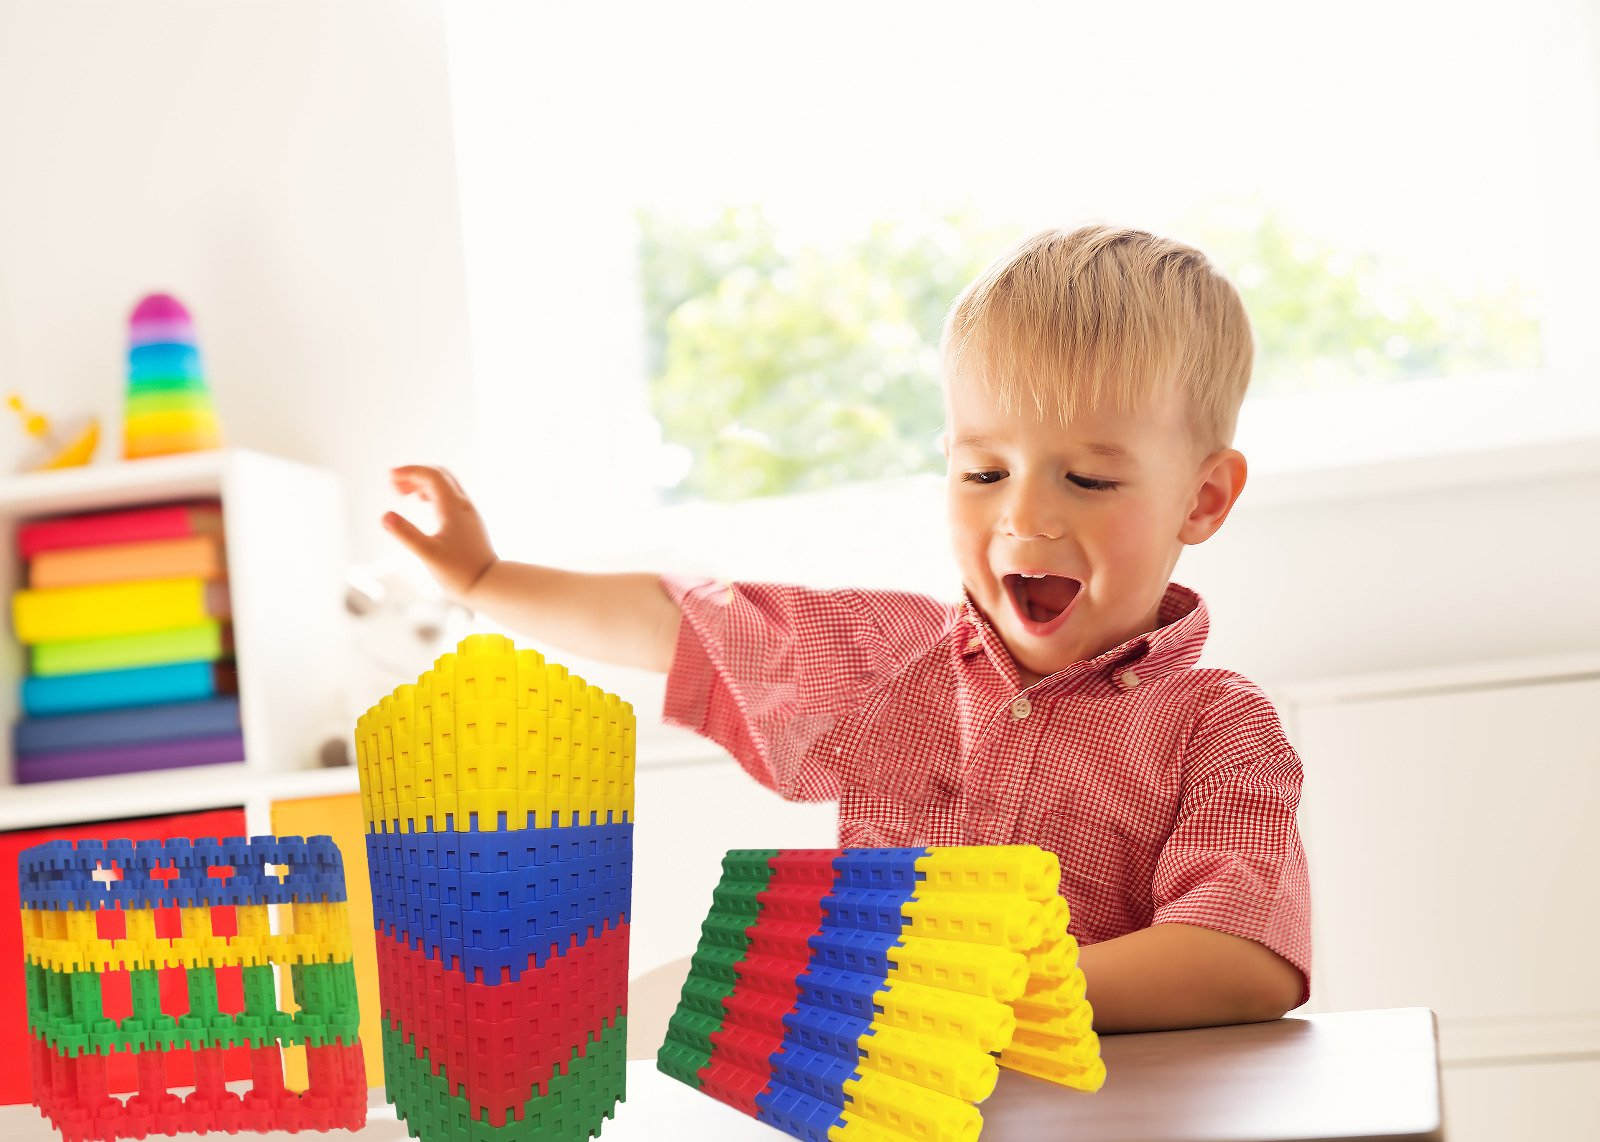 Best Learning Toys For 3 Year Olds : Building blocks pc set by ctk toys u fun and year old